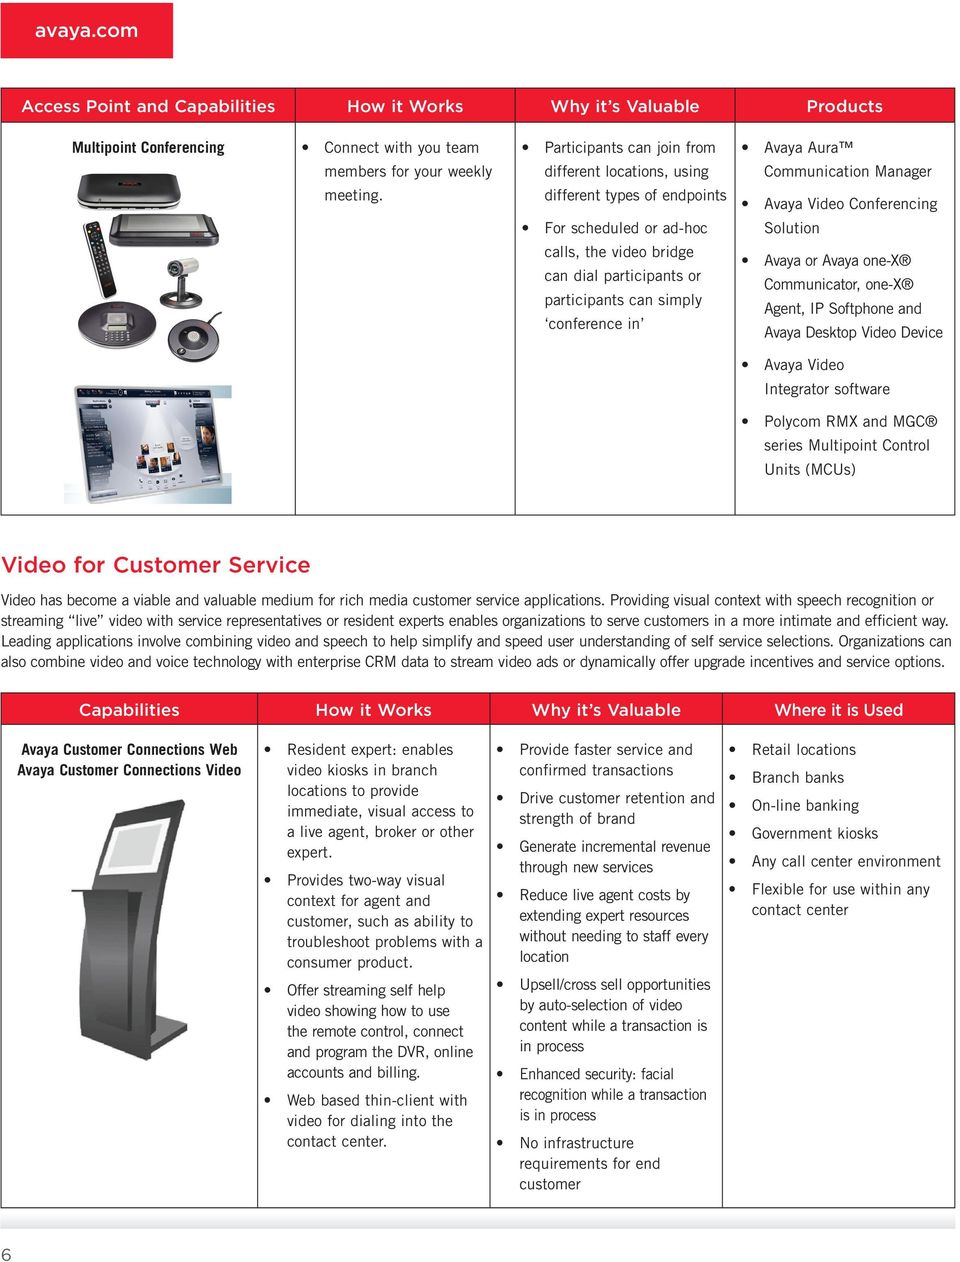 Aura Communication Manager Solution Avaya or Avaya one X Communicator, one-x Agent, IP Softphone and Avaya Desktop Video Device Avaya Video Integrator software Polycom RMX and MGC series Multipoint